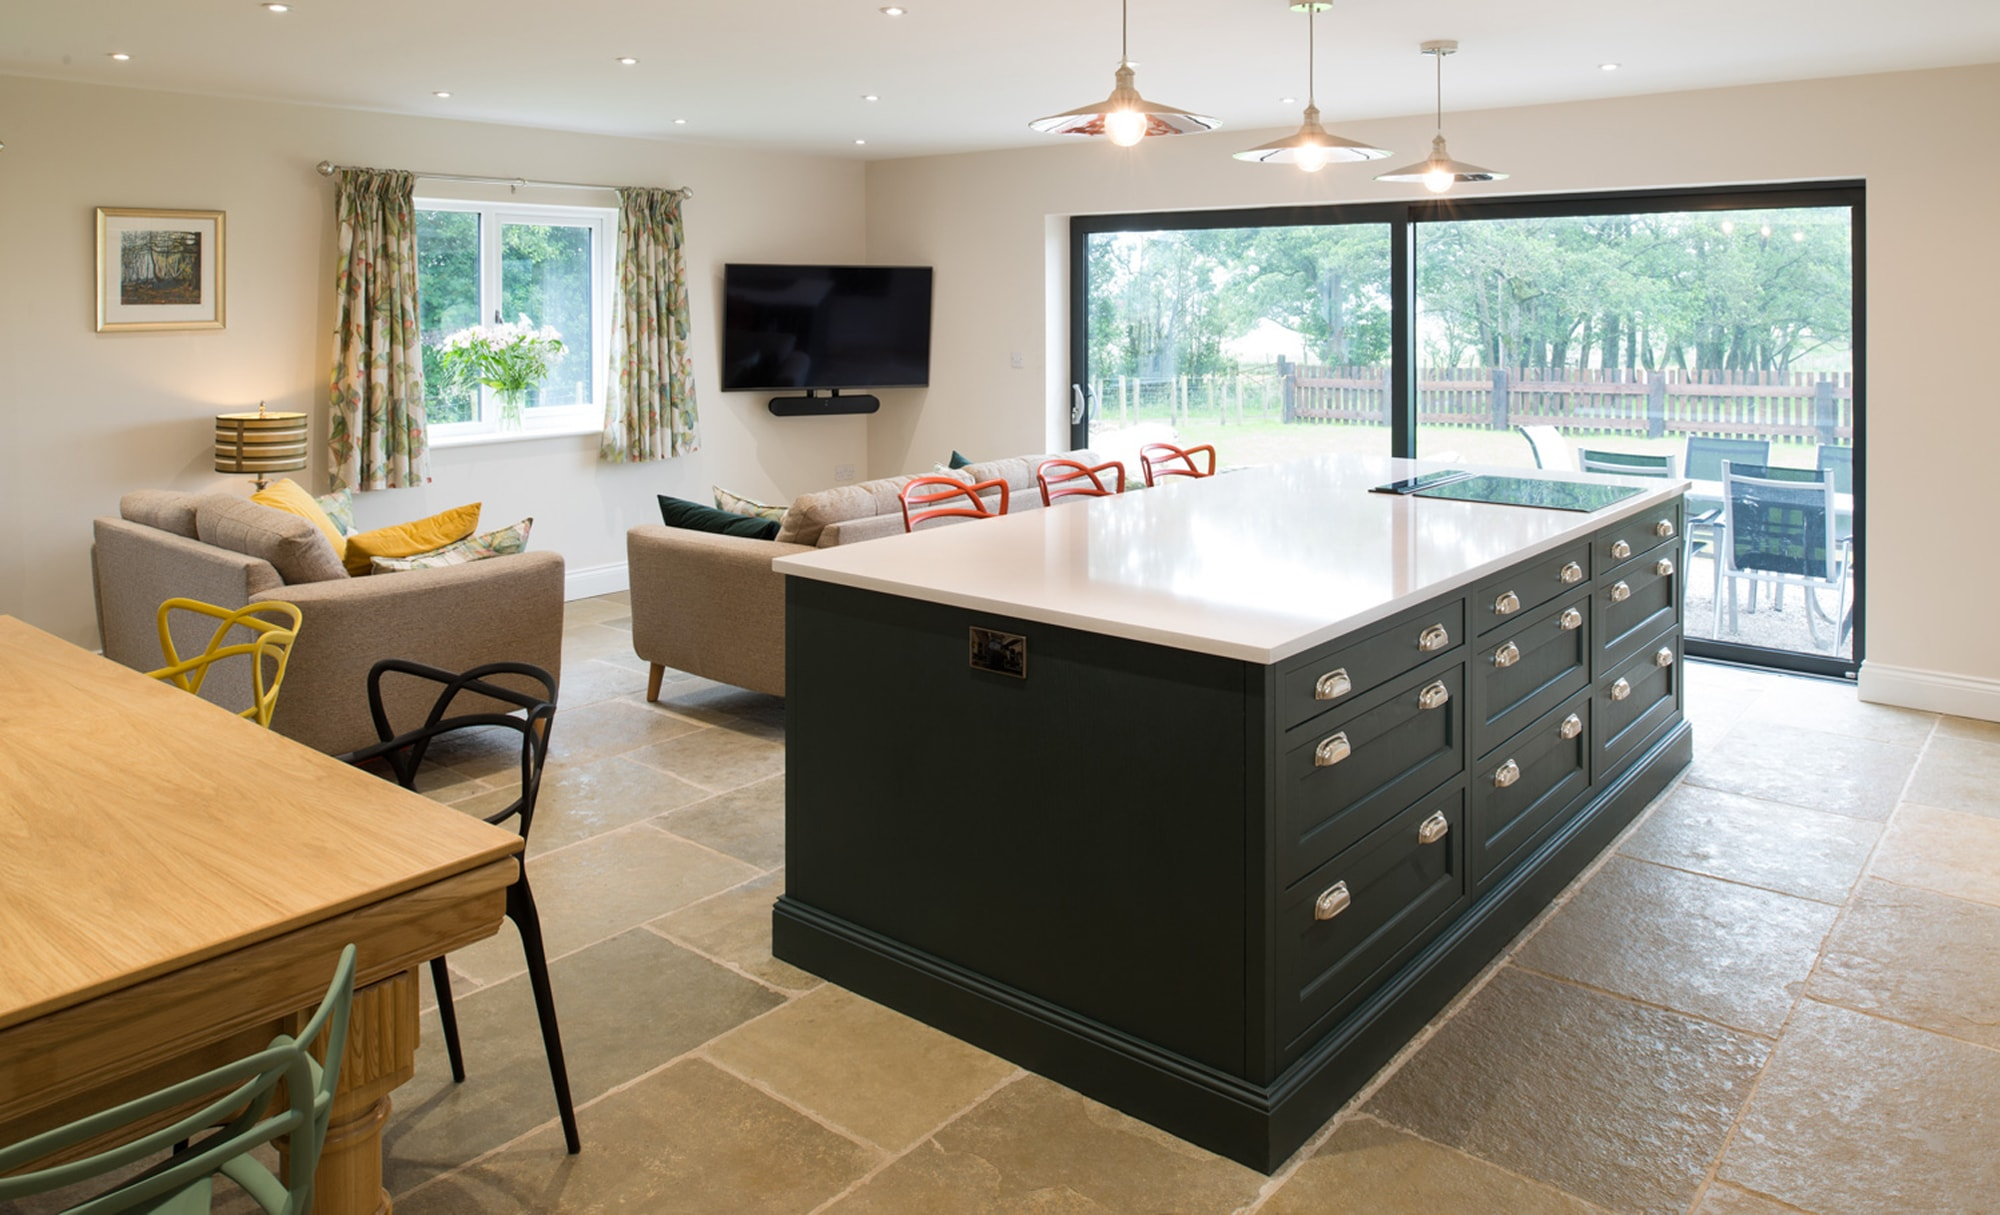 Maelstrom Belgravia Shell & Deep Forest Kitchen for a home in Lancaster